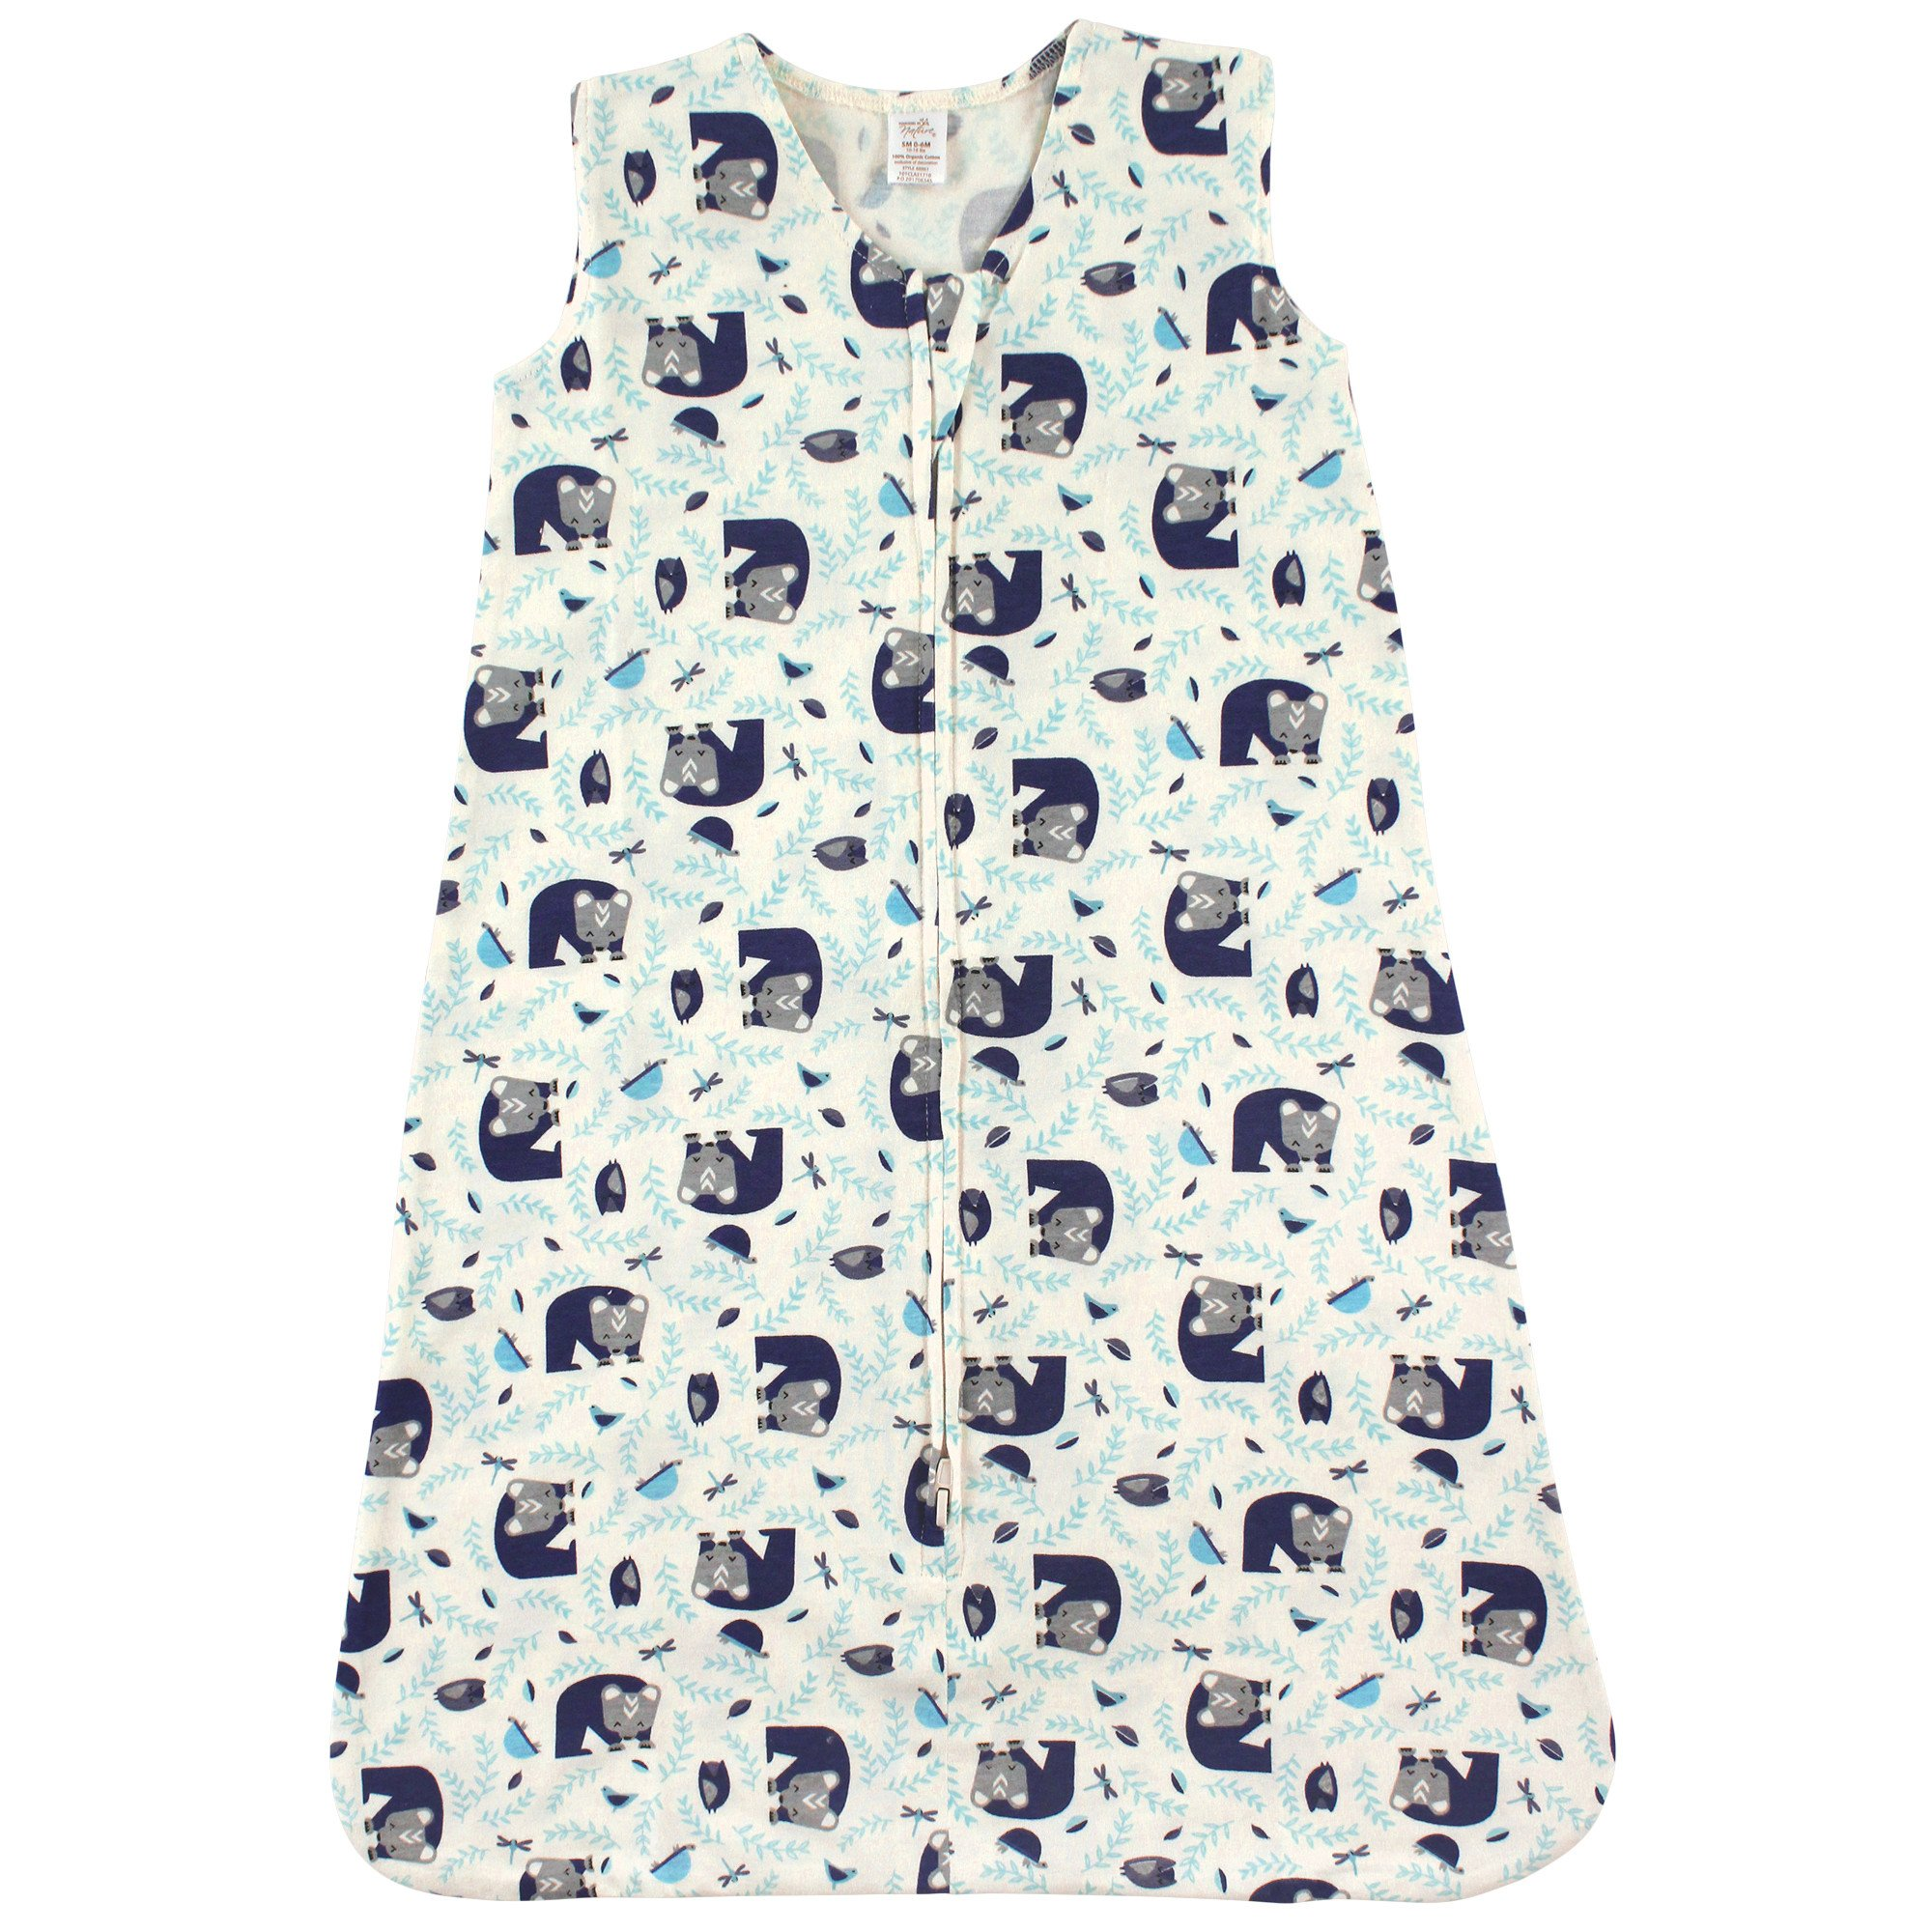 Touched by Nature Baby Organic Cotton Wearable Safe Printed Sleeping Bag, Woodland, 18-24 Months